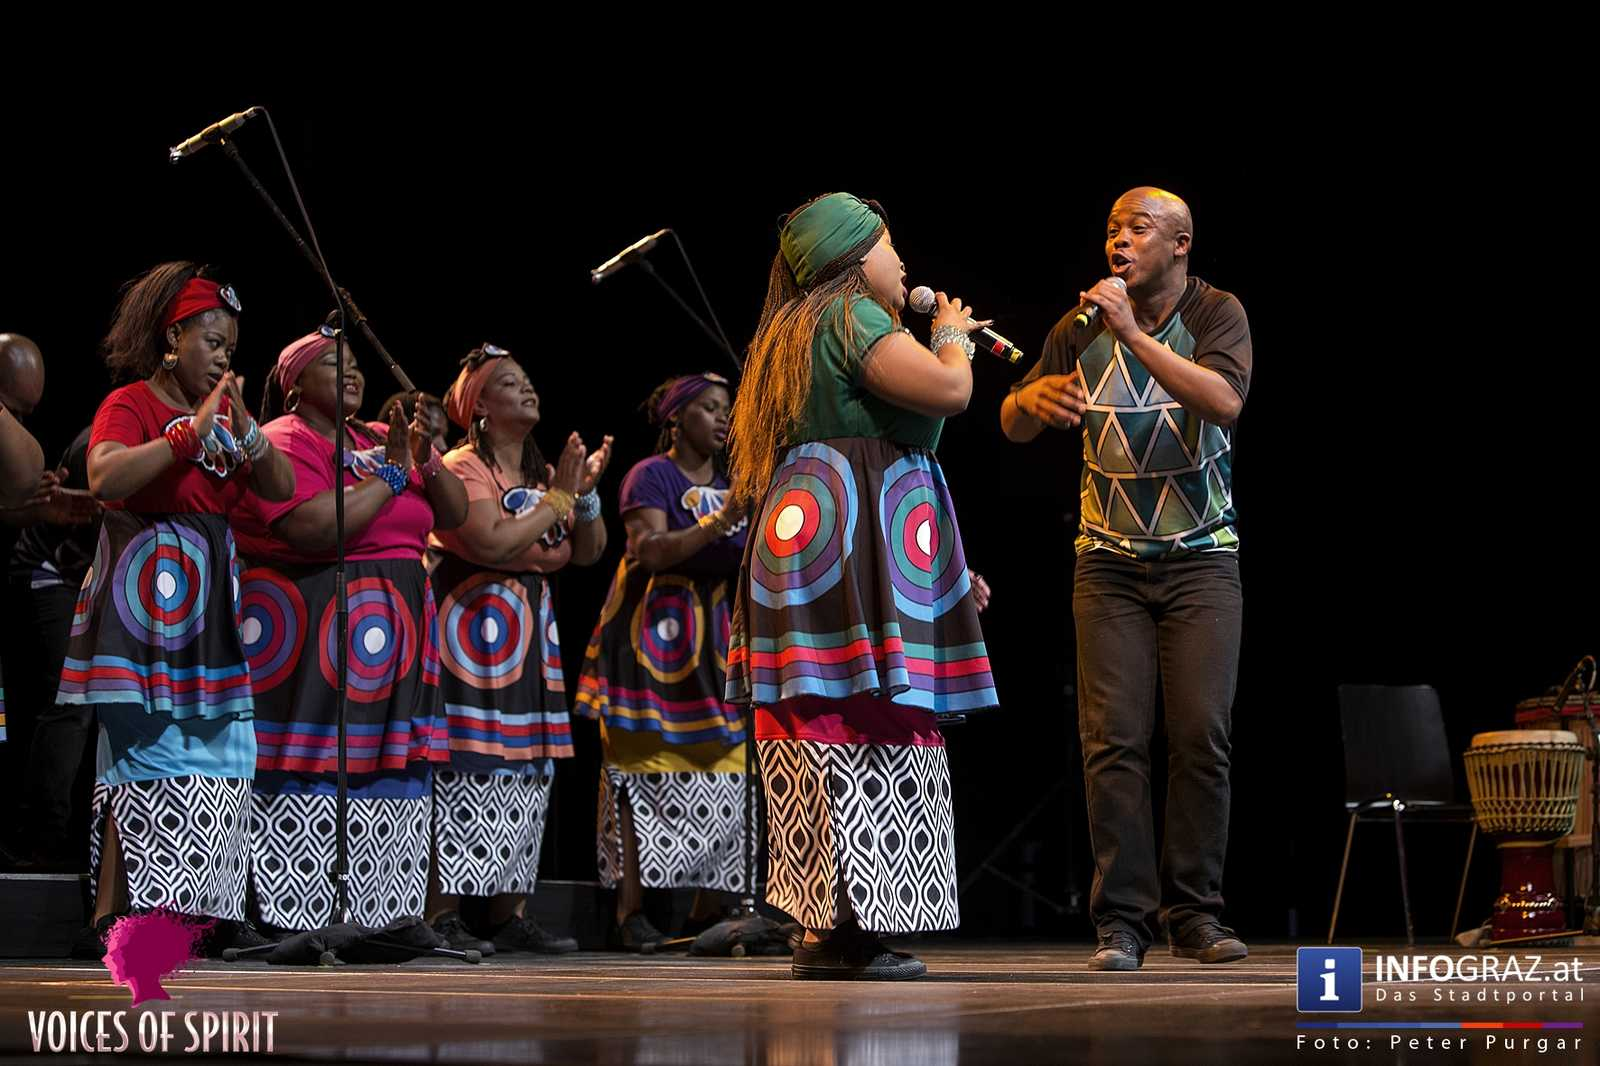 soweto gospel choir internationales chorfestival statdthalle graz voices of spirit eroeffnung festivals 2016 020